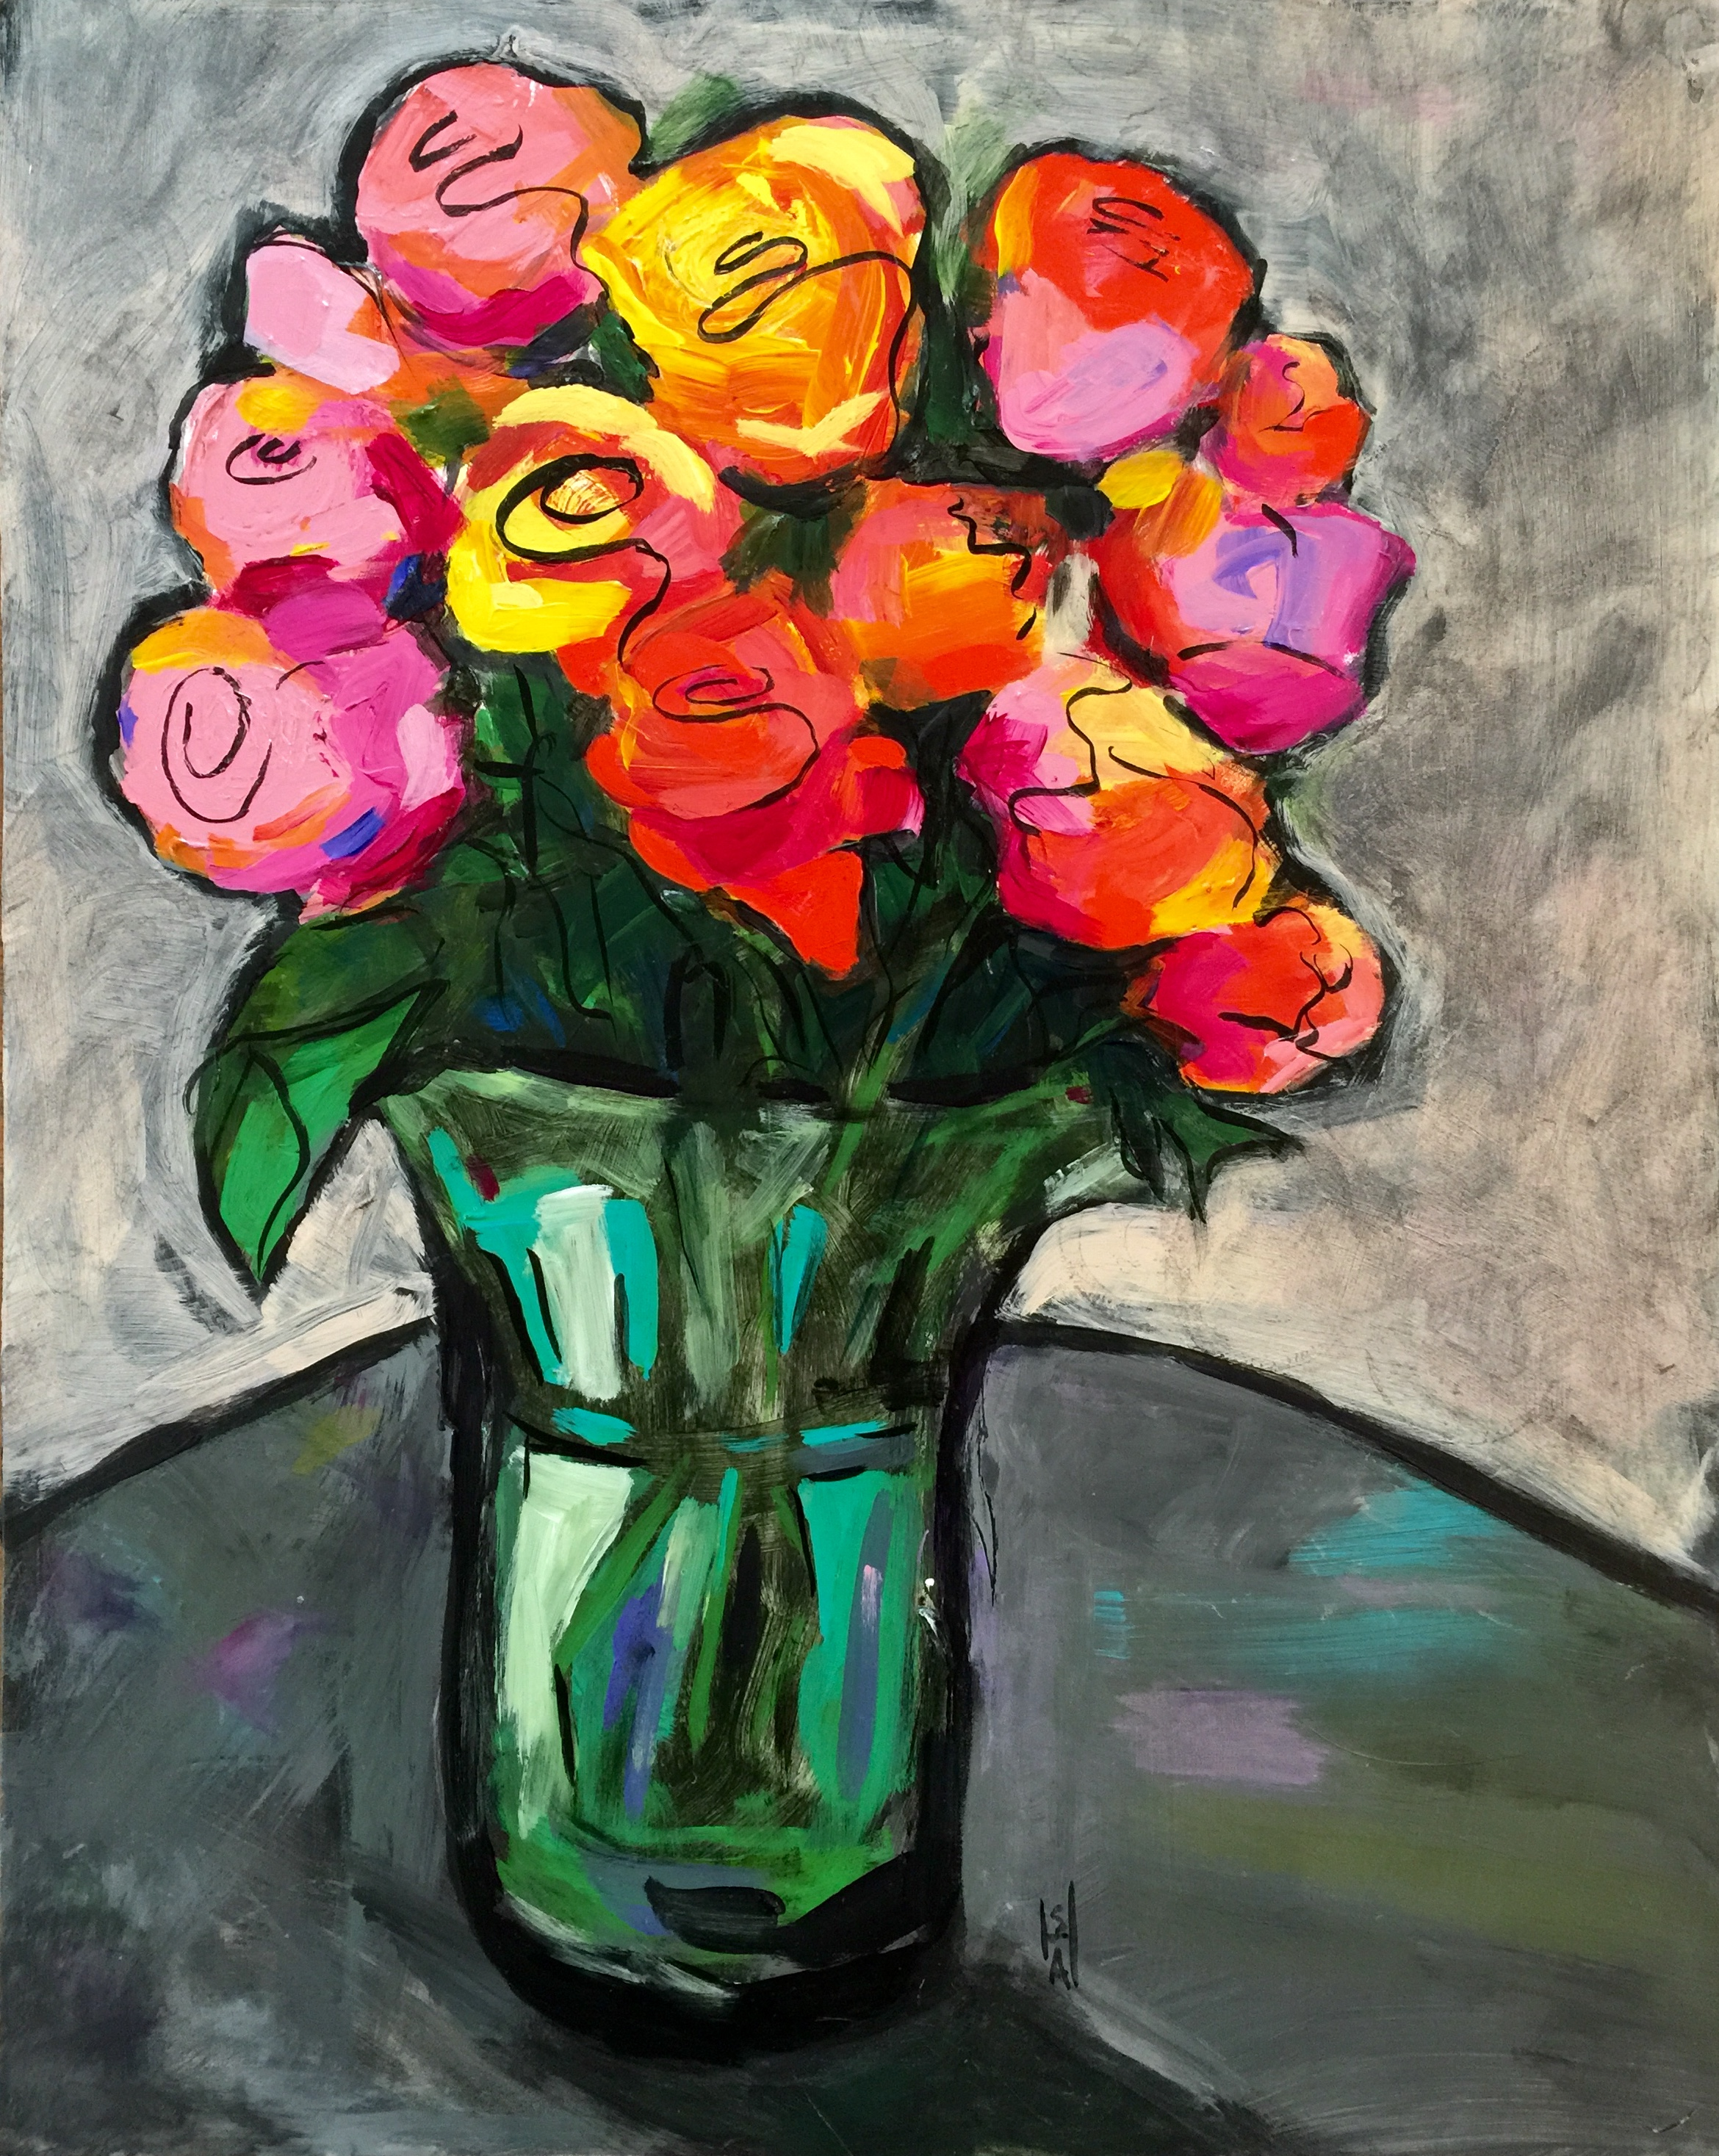 Zippy Roses  Mixed media on gesso board, 16x20. Available